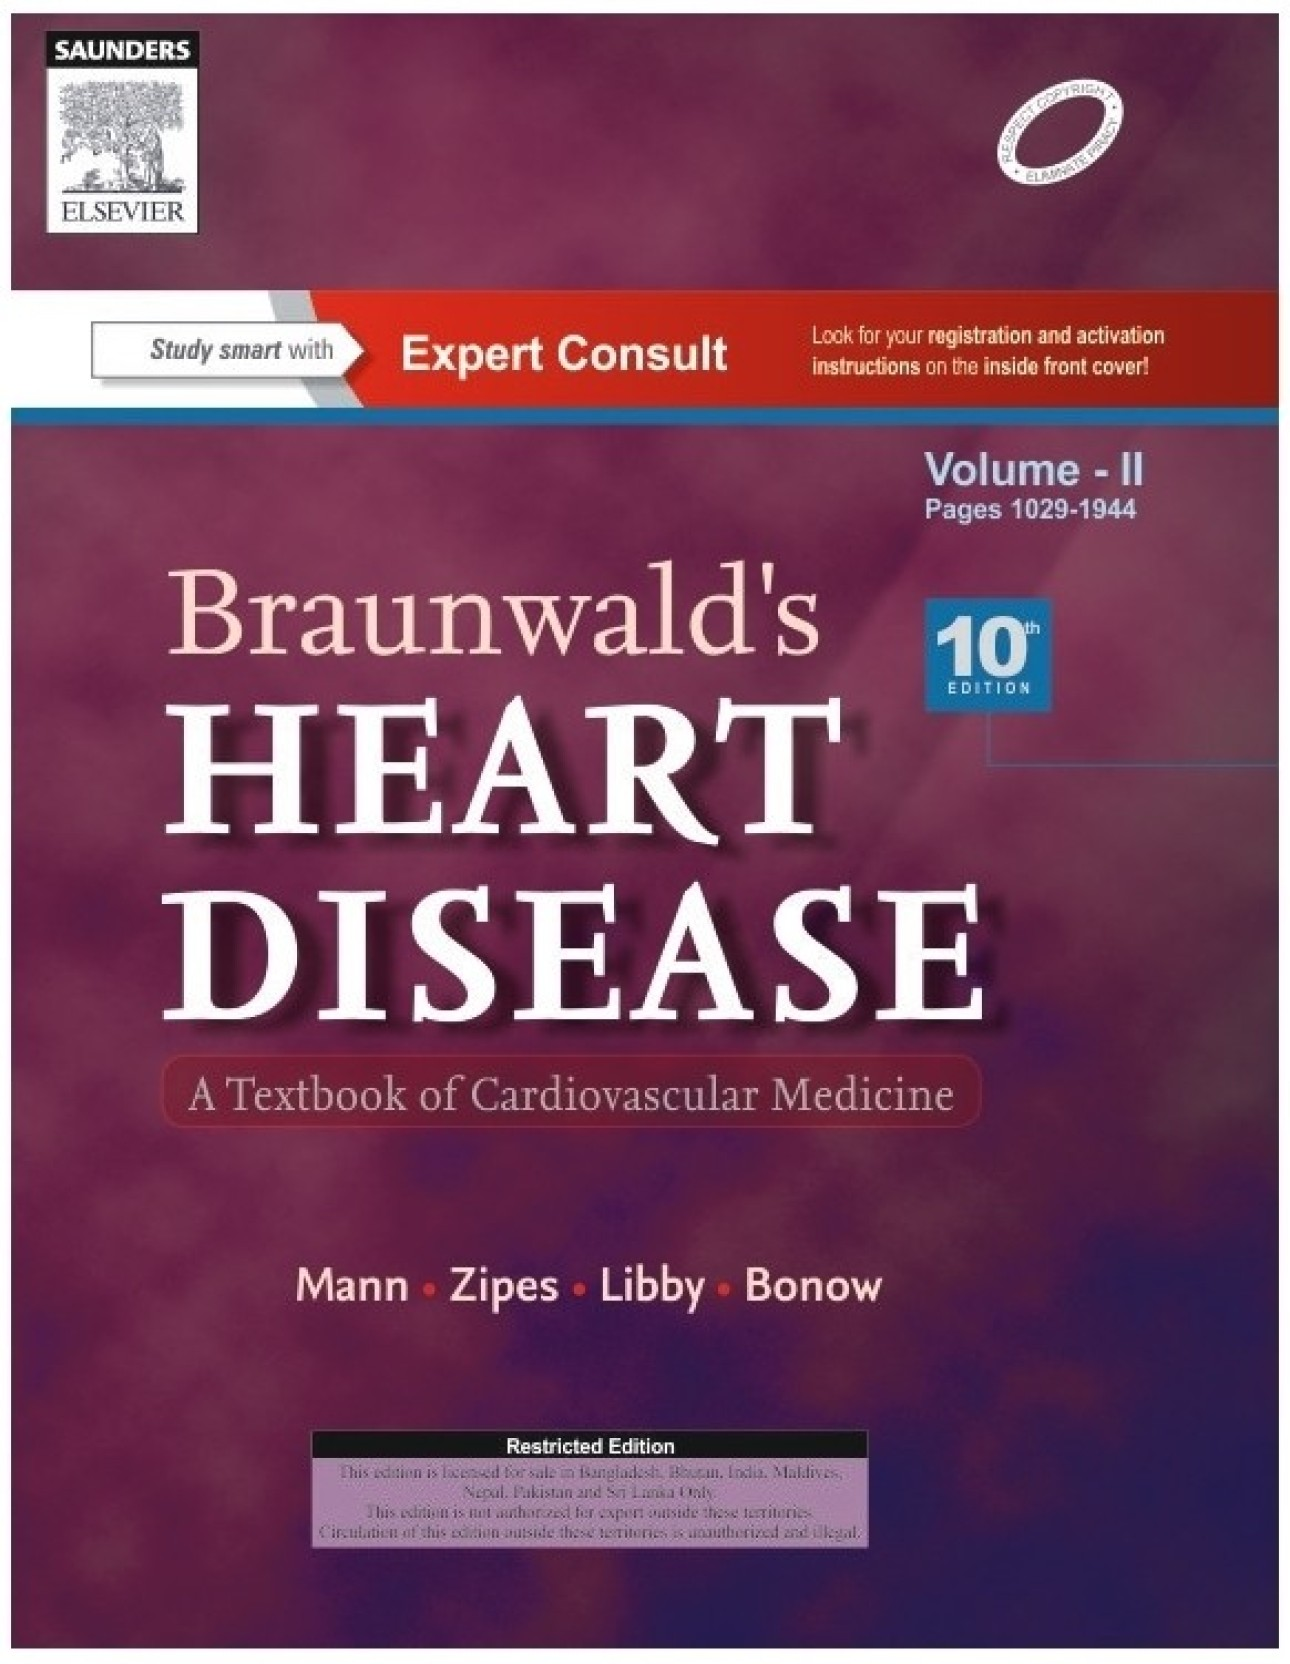 Braunwald's Heart Disease : A Textbook of Cardiovascular Medicine (Set of 2  Volumes) 10th. ON OFFER